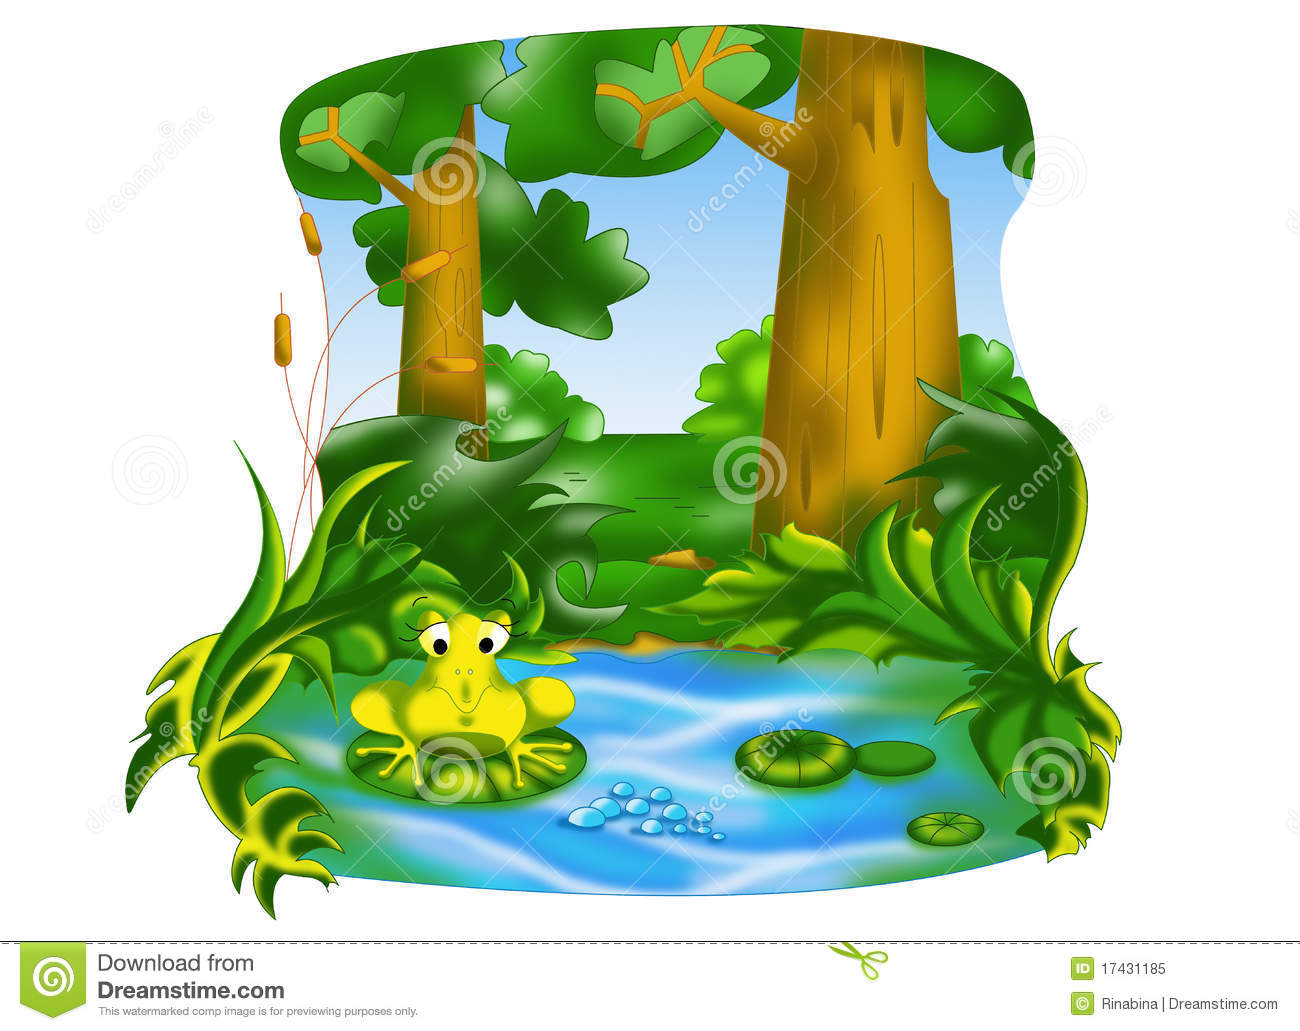 Images For Frog Pond Clipart Image Search Results